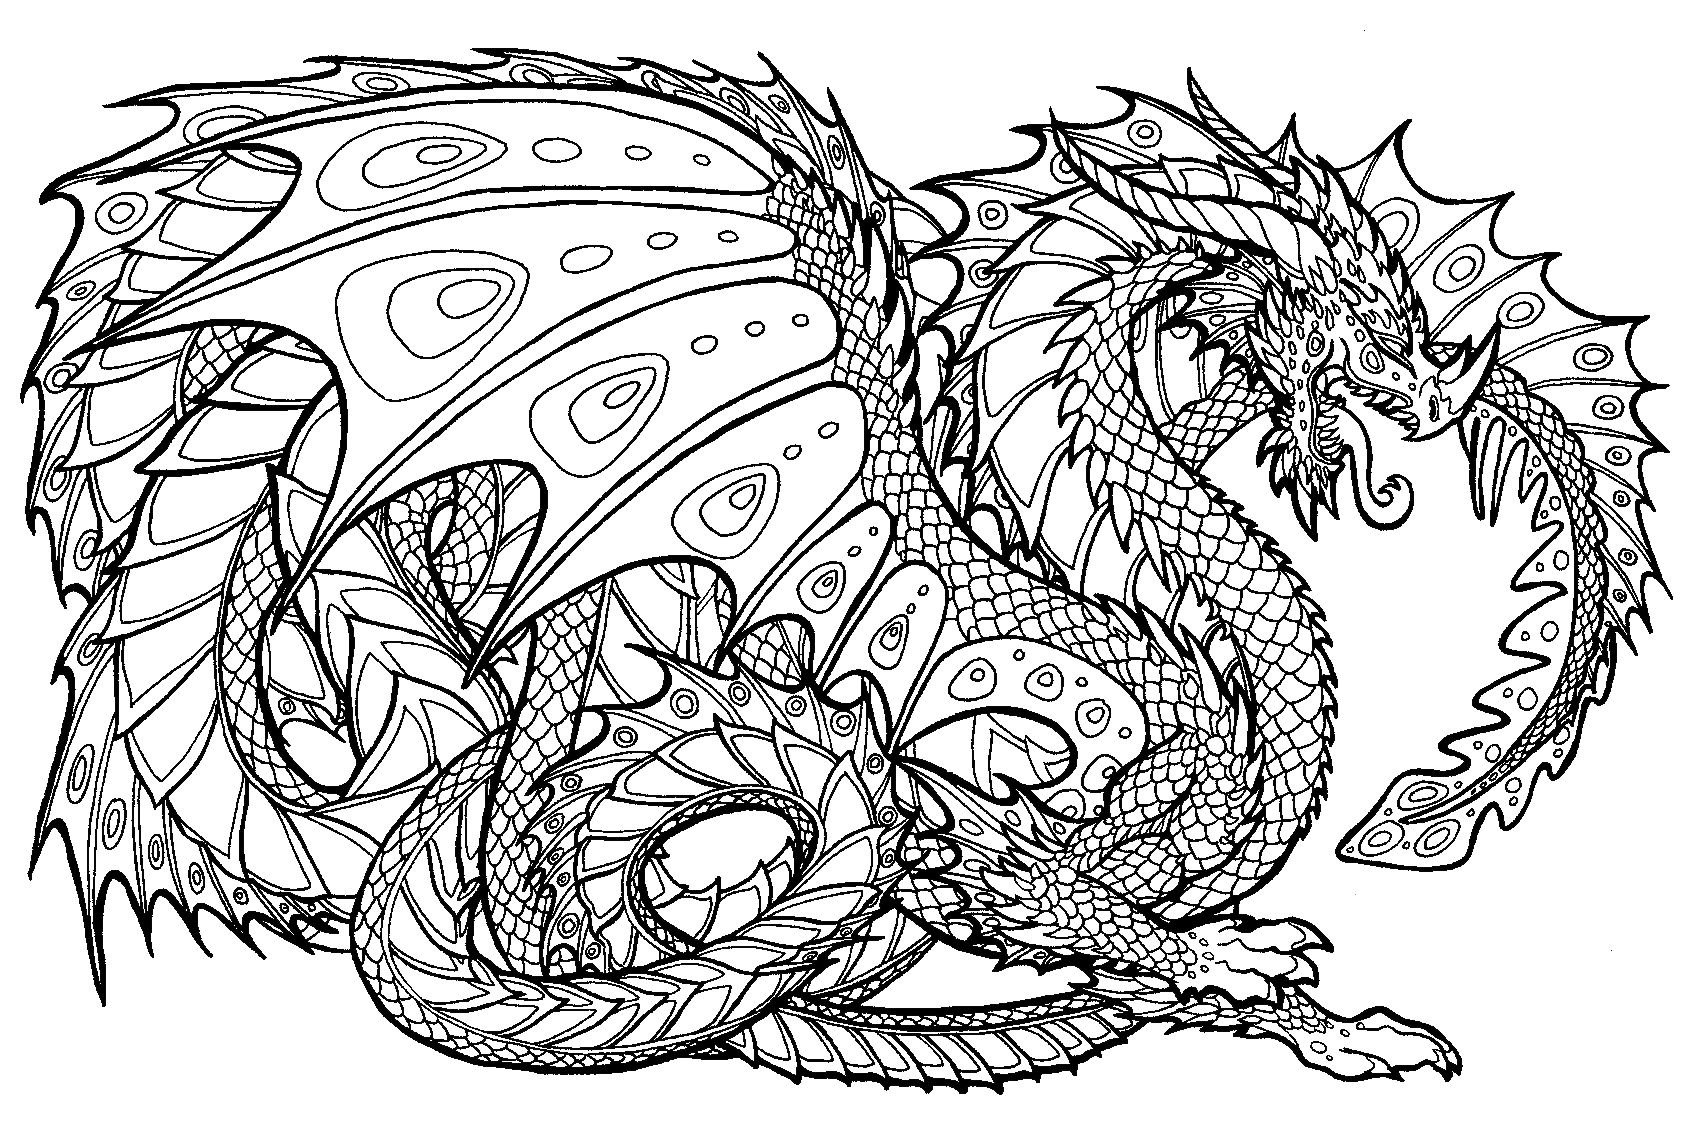 coloring pages dragon realistic dragon coloring pages at getdrawings free download pages dragon coloring